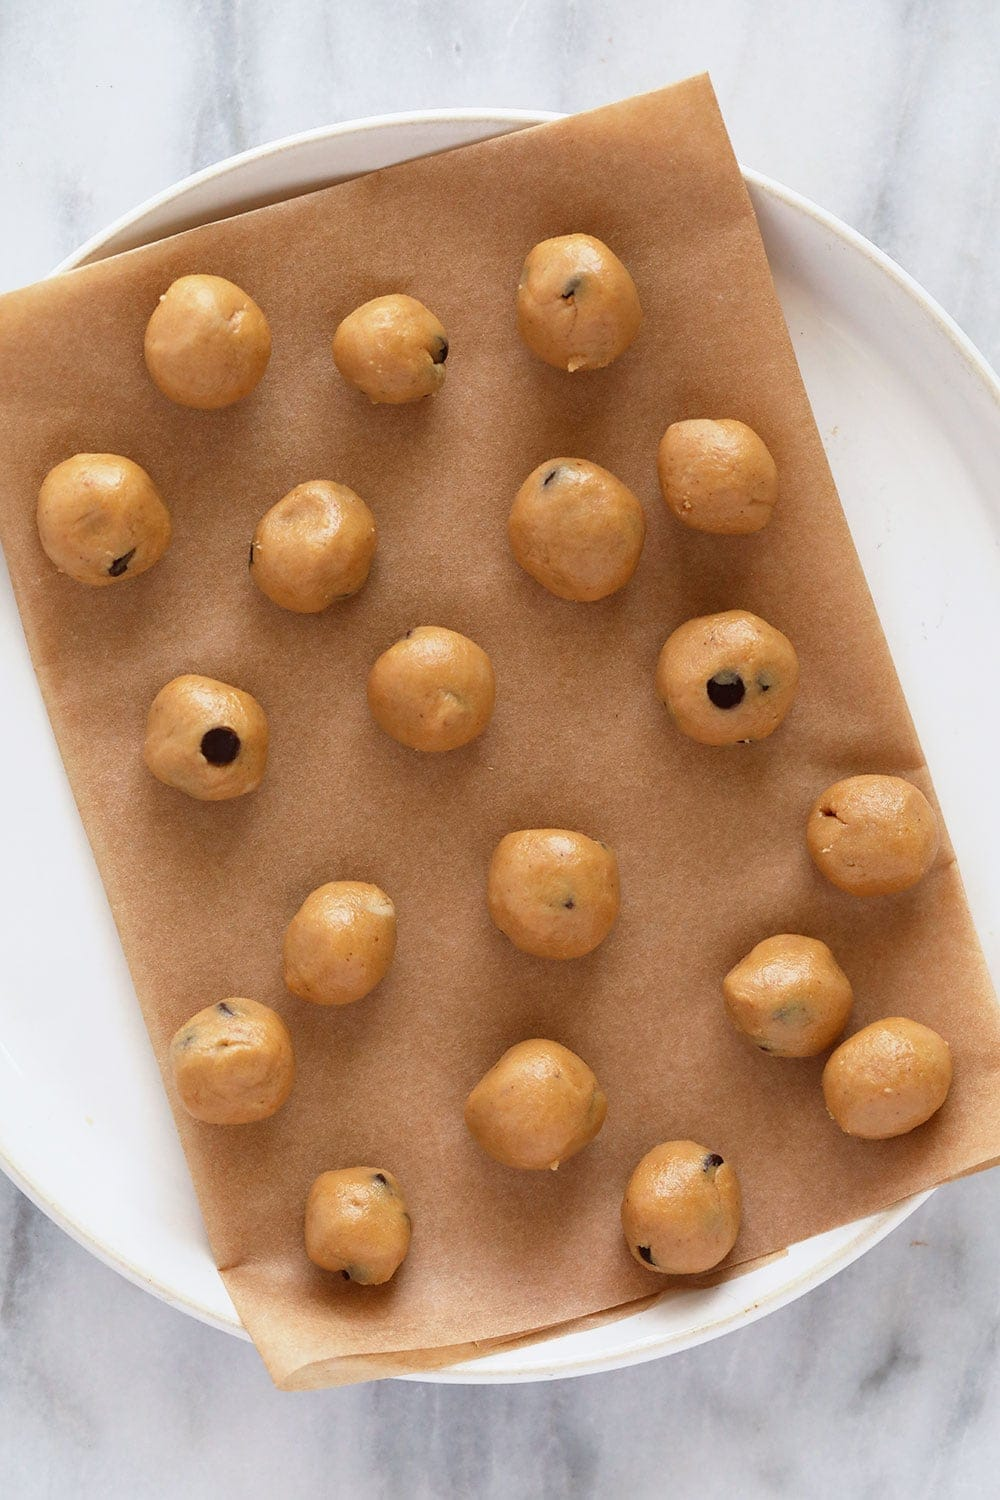 Cookie dough on a plate